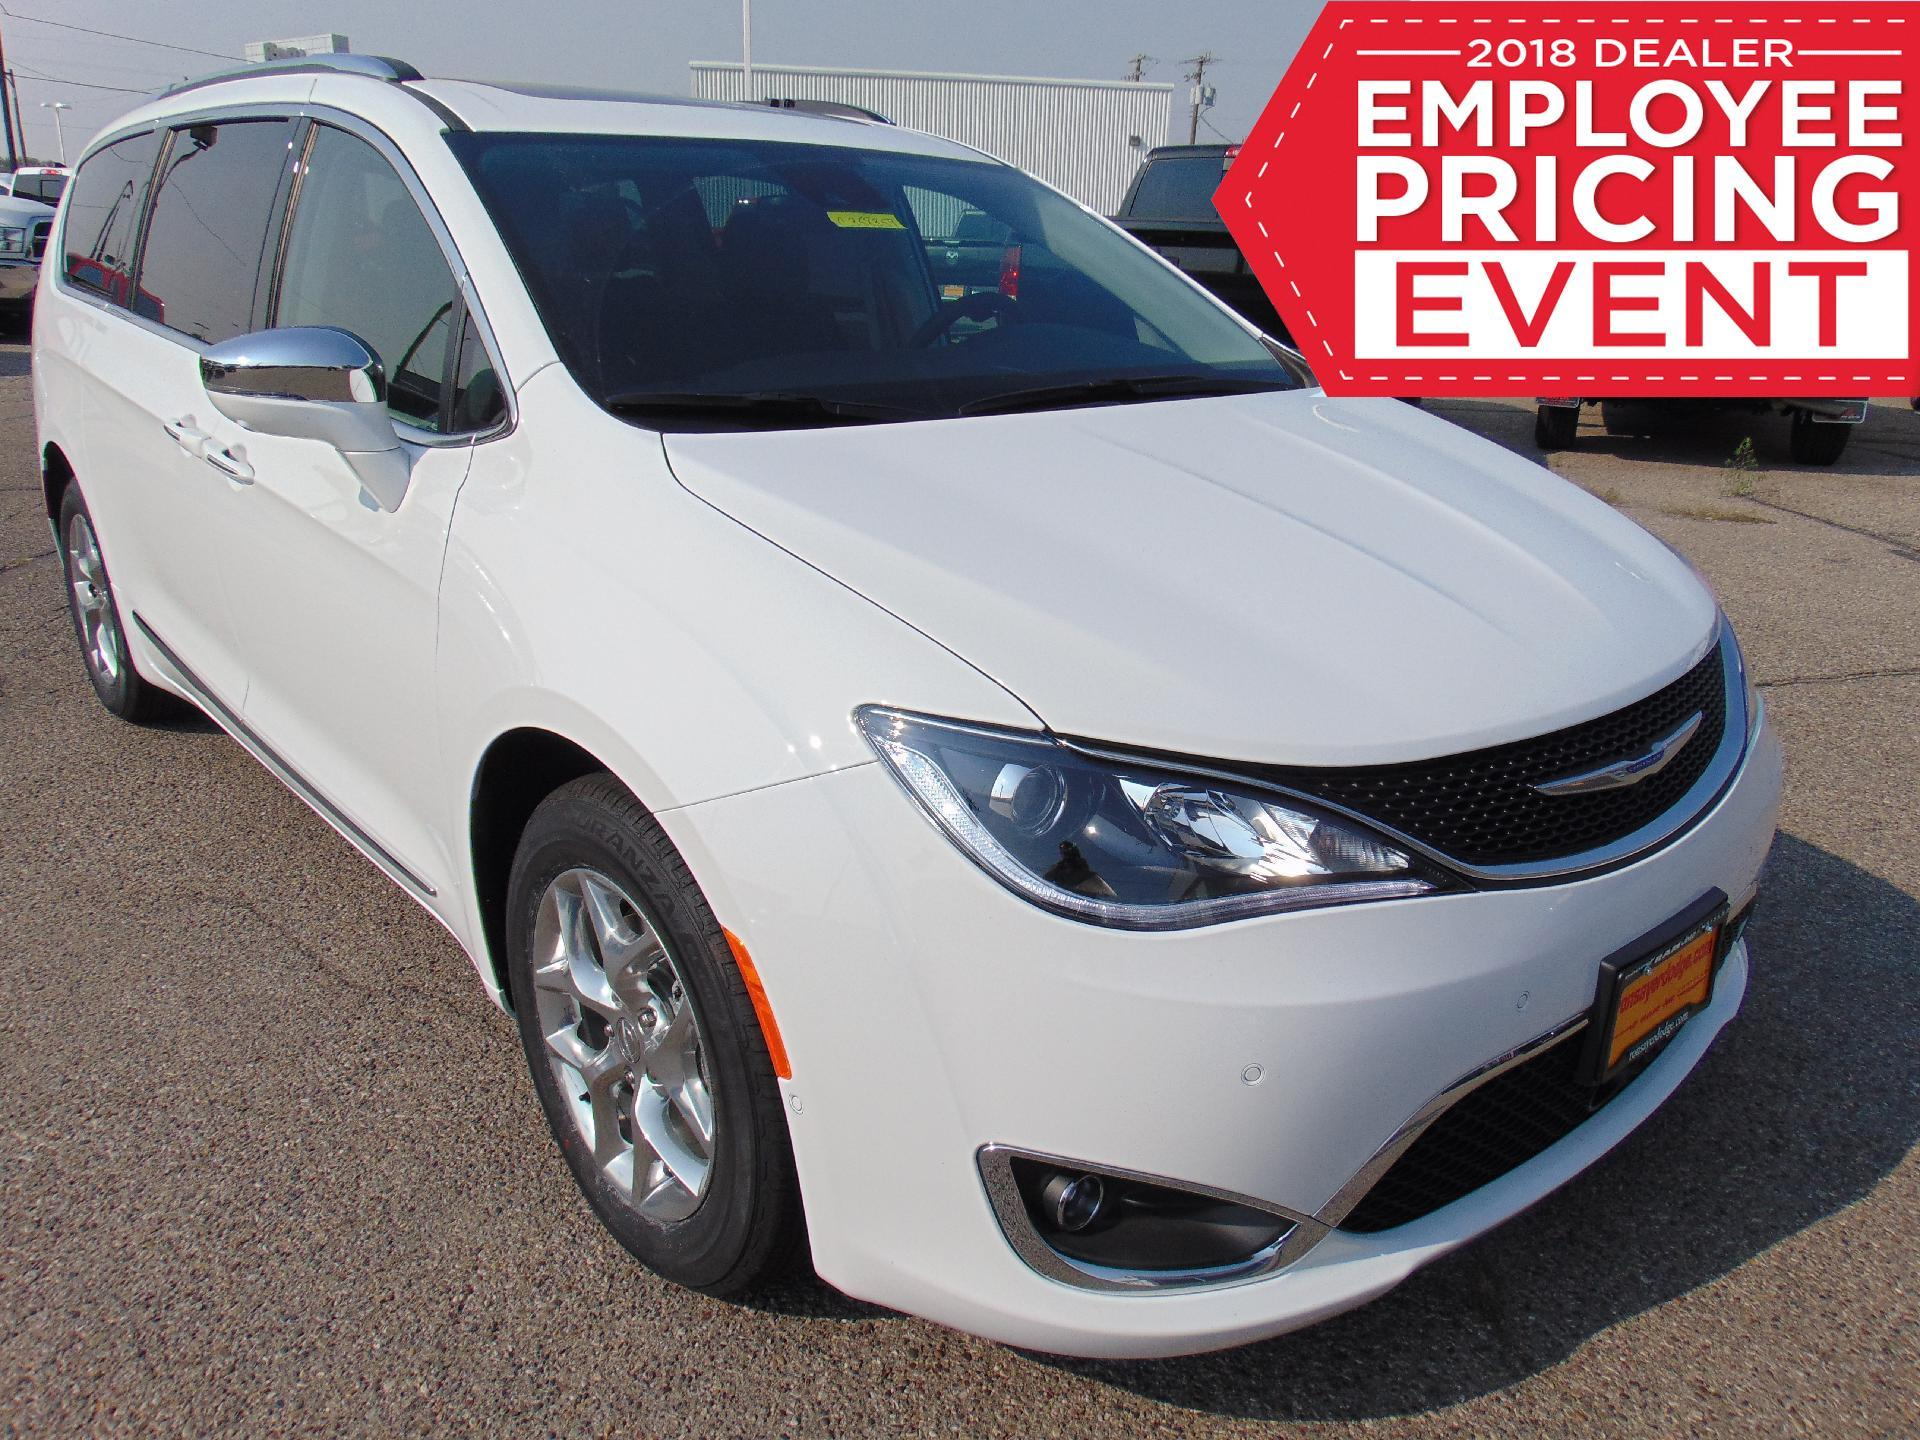 New 2018 CHRYSLER Pacifica Limited Passenger Van in Idaho Falls #C358359 |  Ron Sayer's Chrysler Jeep Dodge